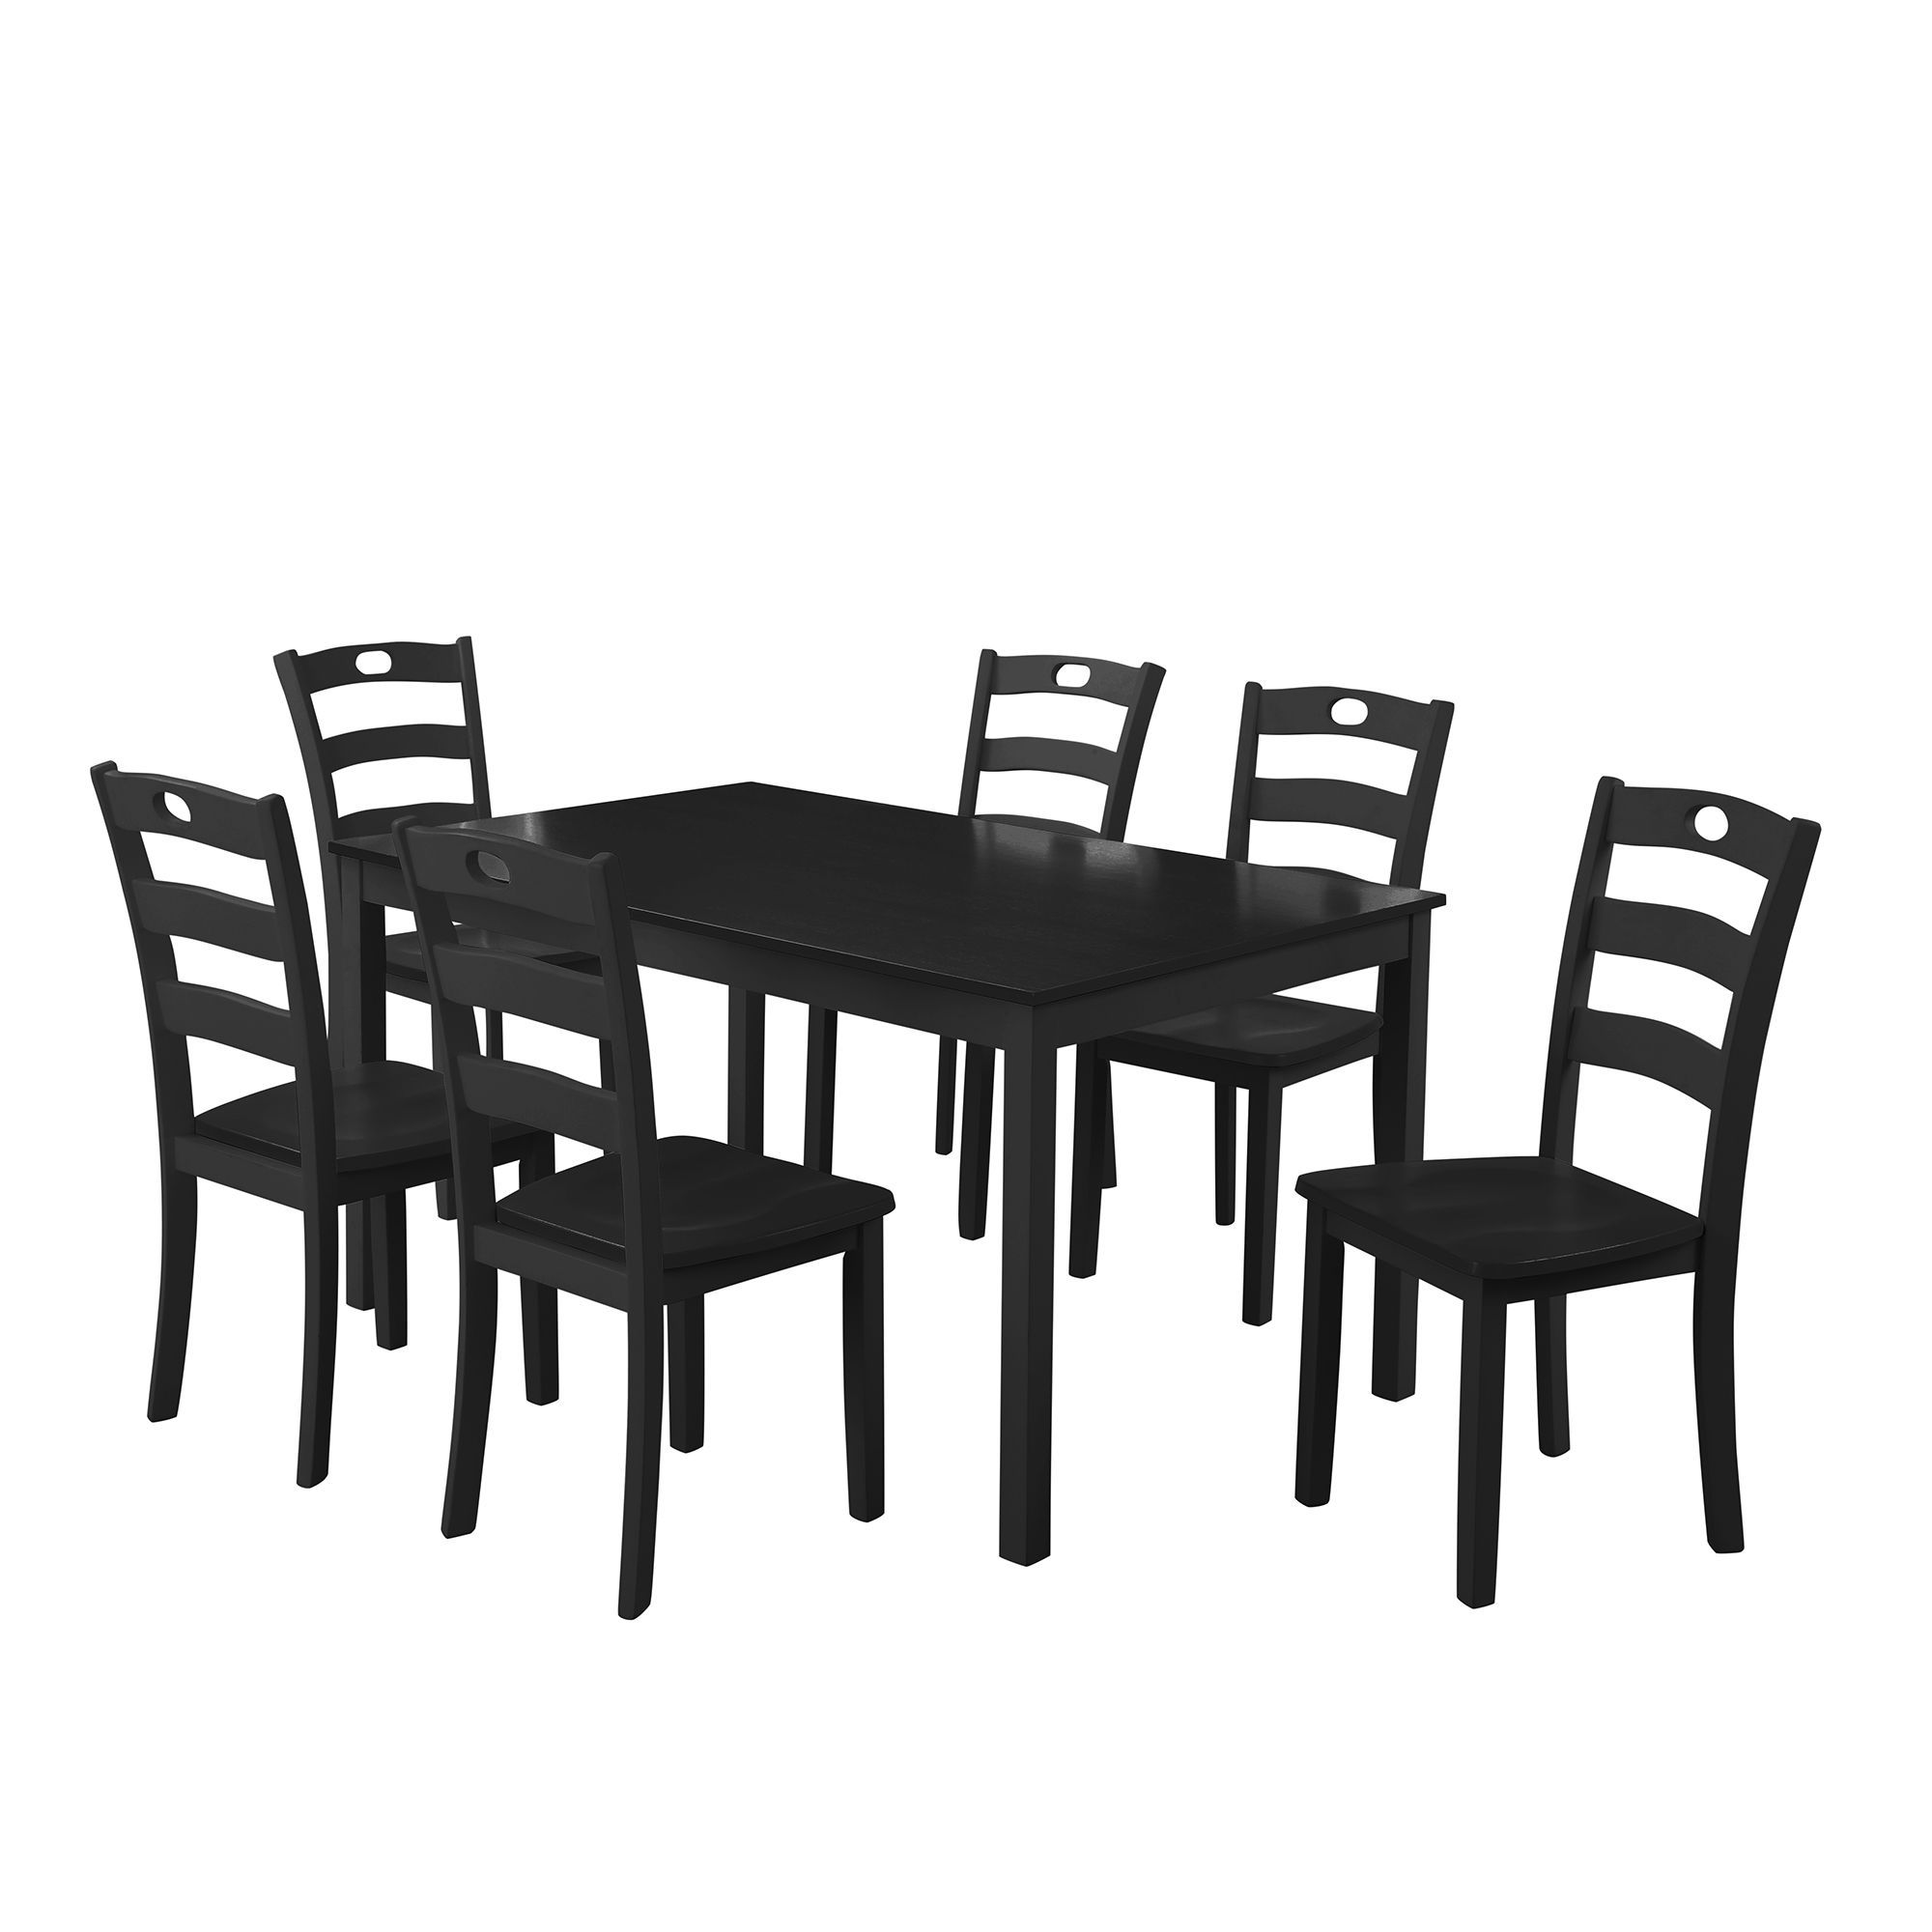 Dining Table Sets Clearance, 7 Piece Dinette Set Solid